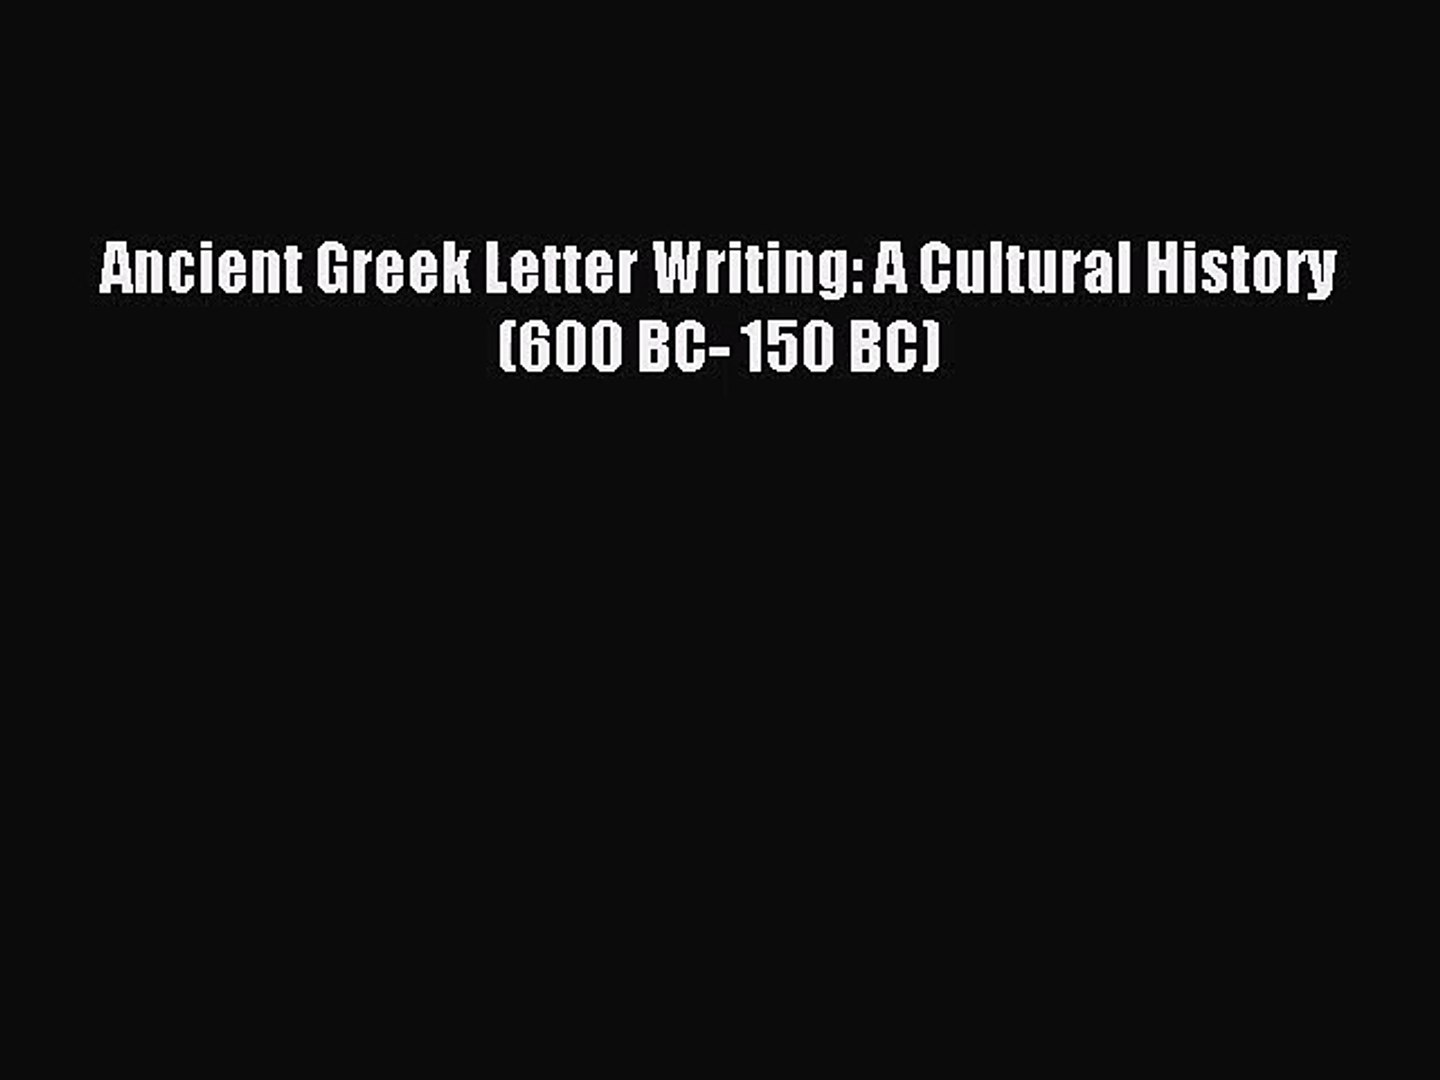 A History of the Hellenistic World: 323 - 30 BC (Blackwell History of the Ancient World)